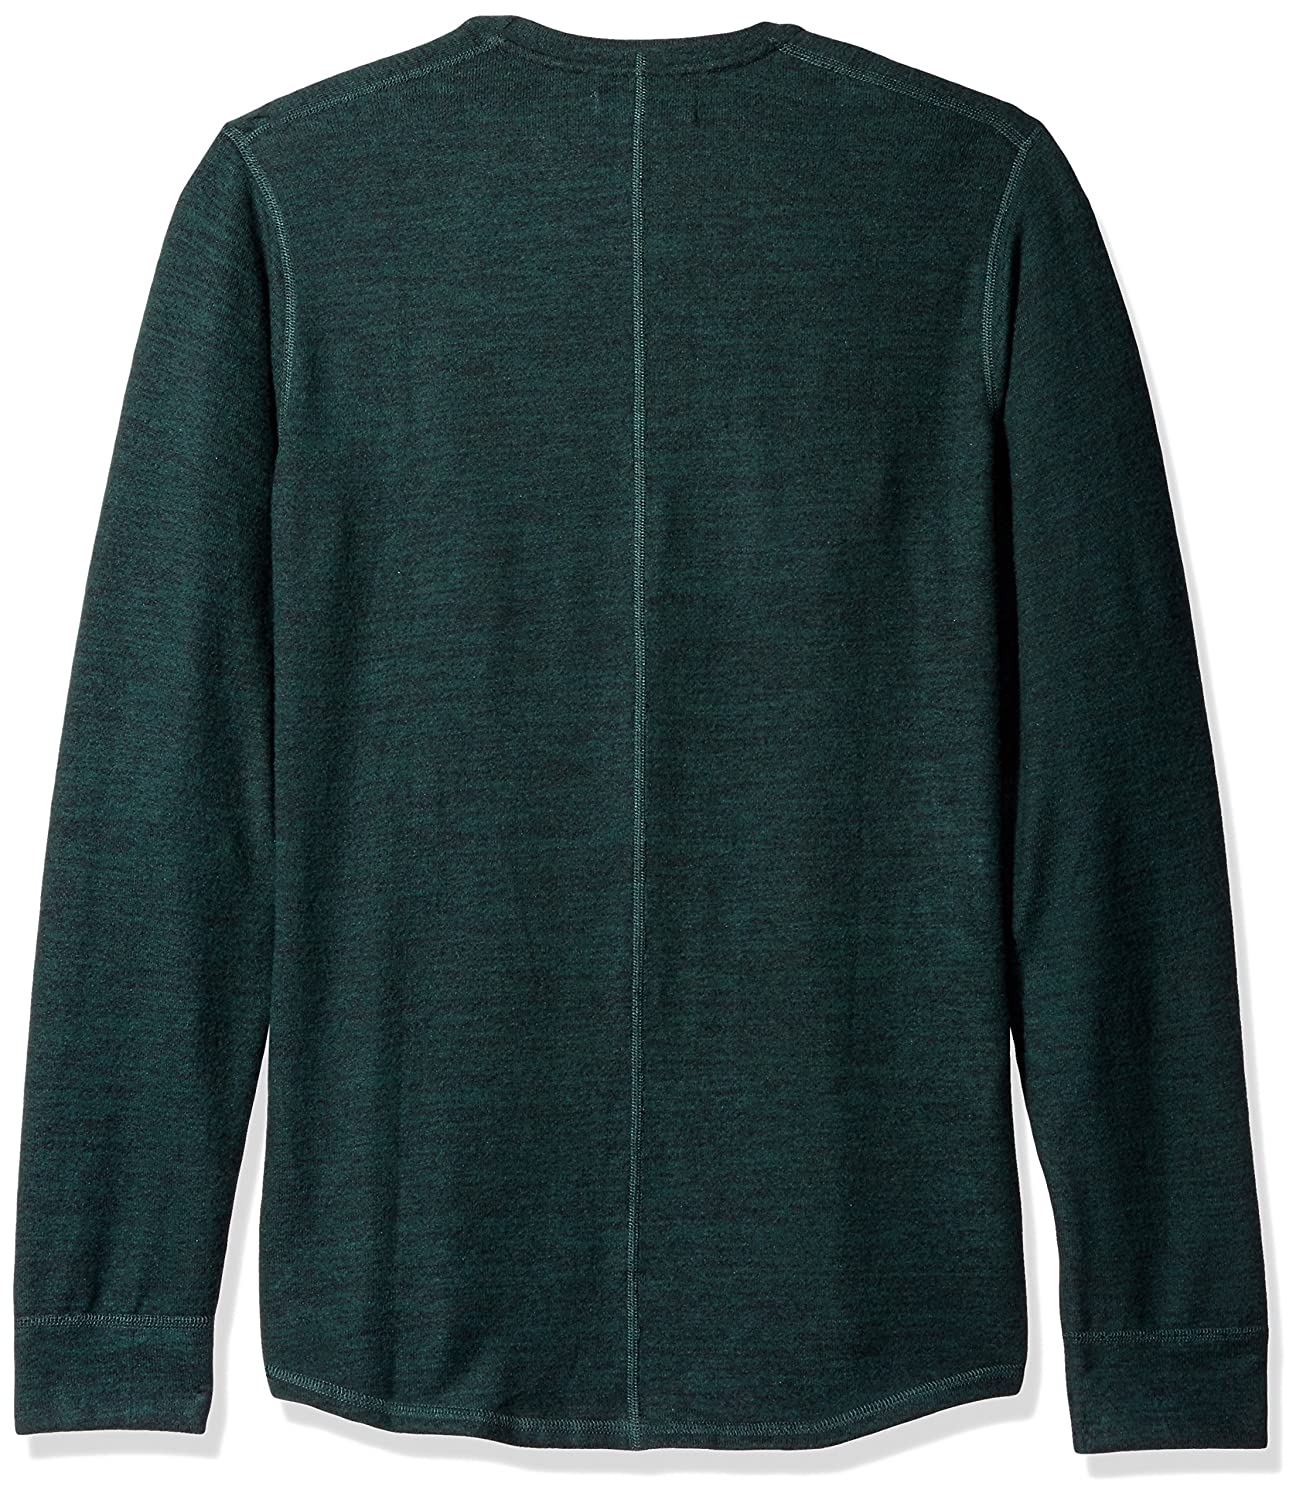 san francisco 0abea c5638 Velvet by Graham & Spencer Men's Bronson Heather Jersey Knit Long Sleeve  Shirt